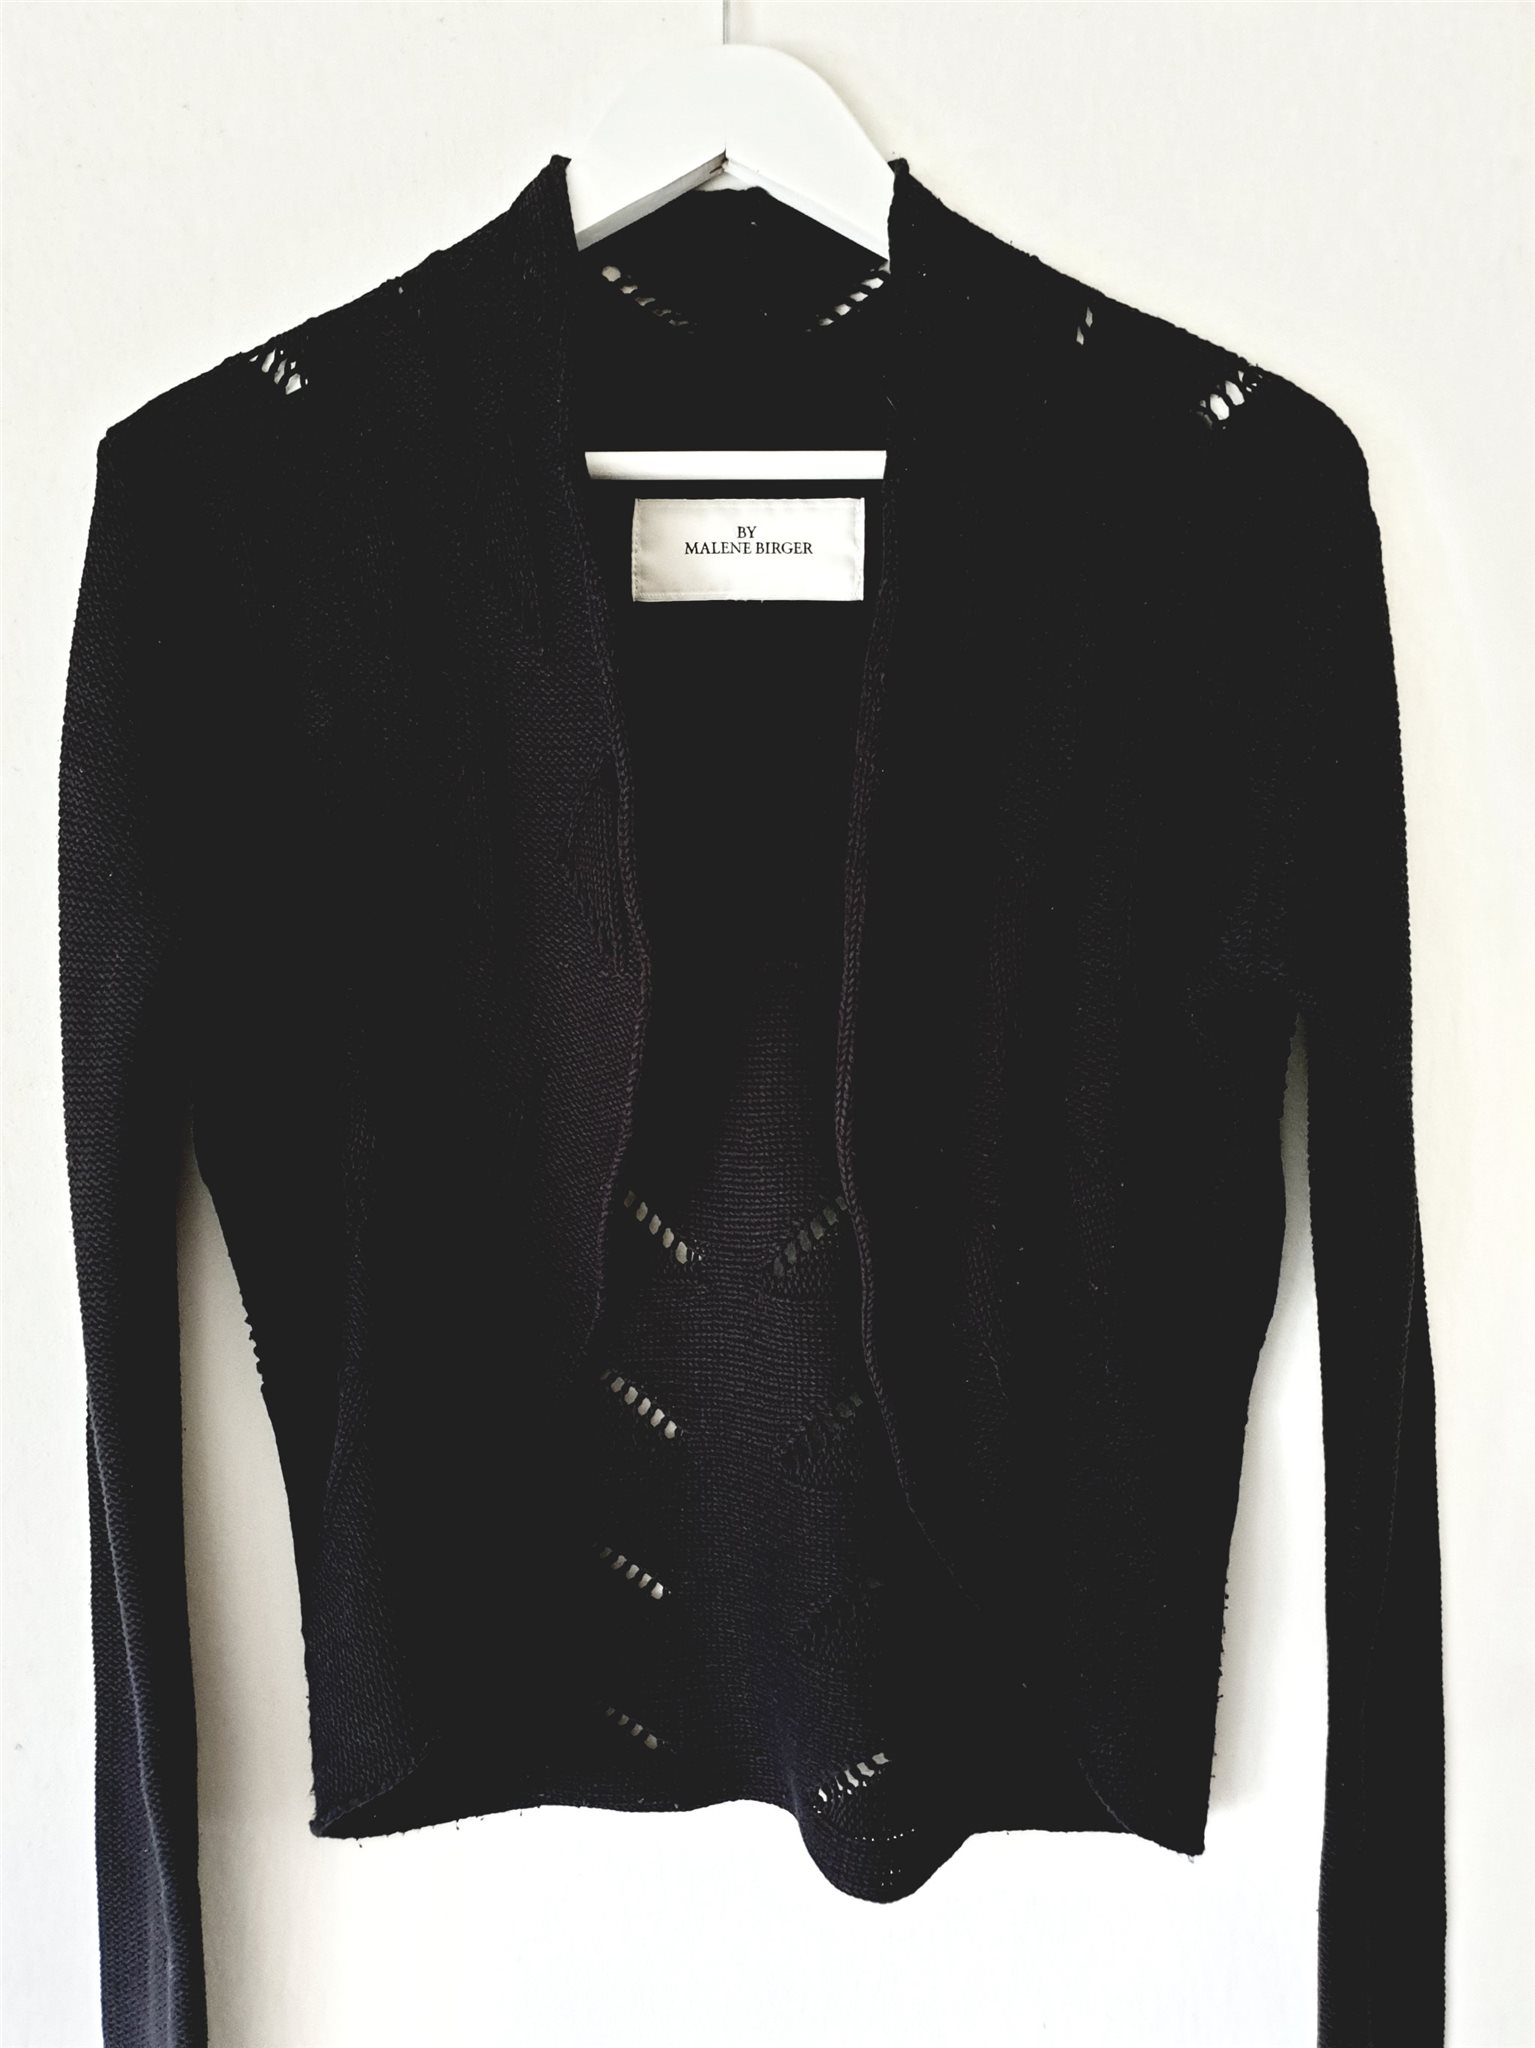 BY MALENE BIRGER svart kofta BOMULL cardigan medium